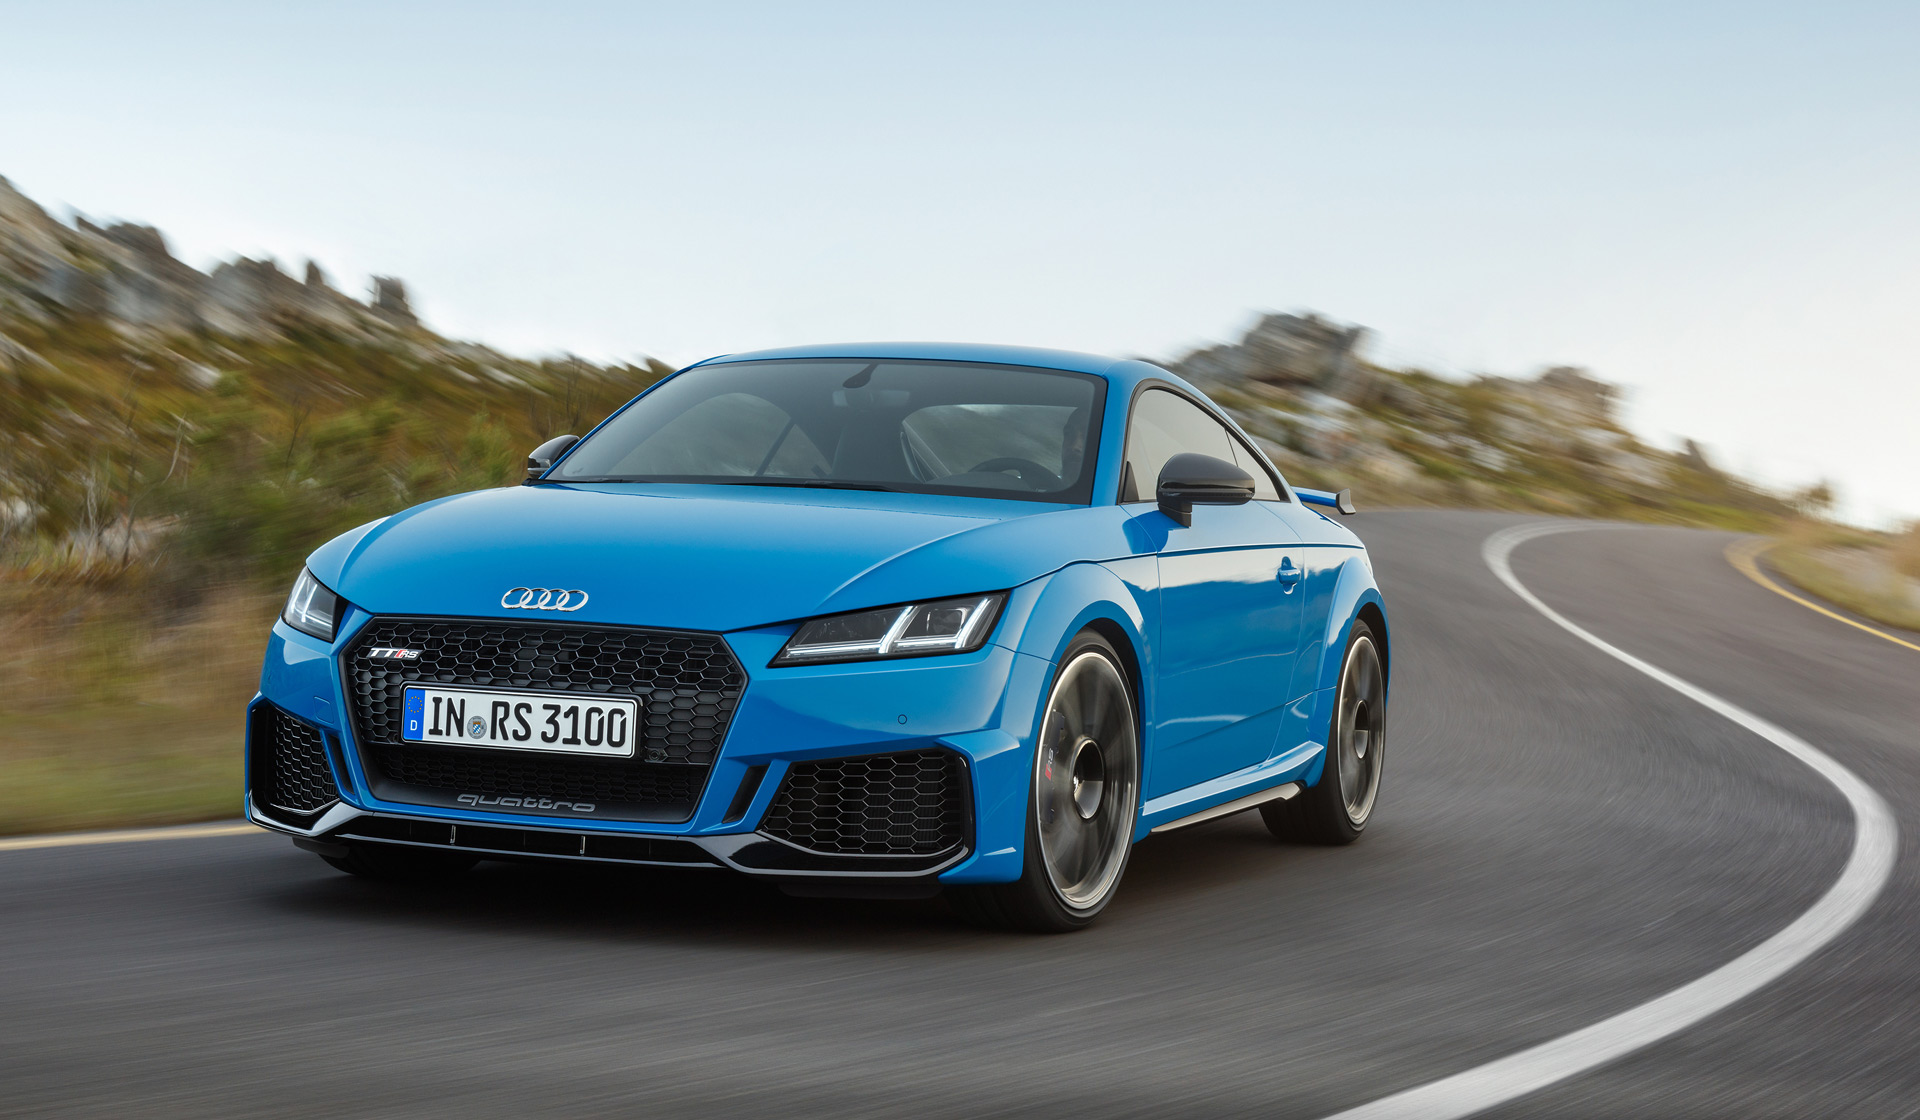 66 New 2020 Audi Tt Rs Price Design and Review